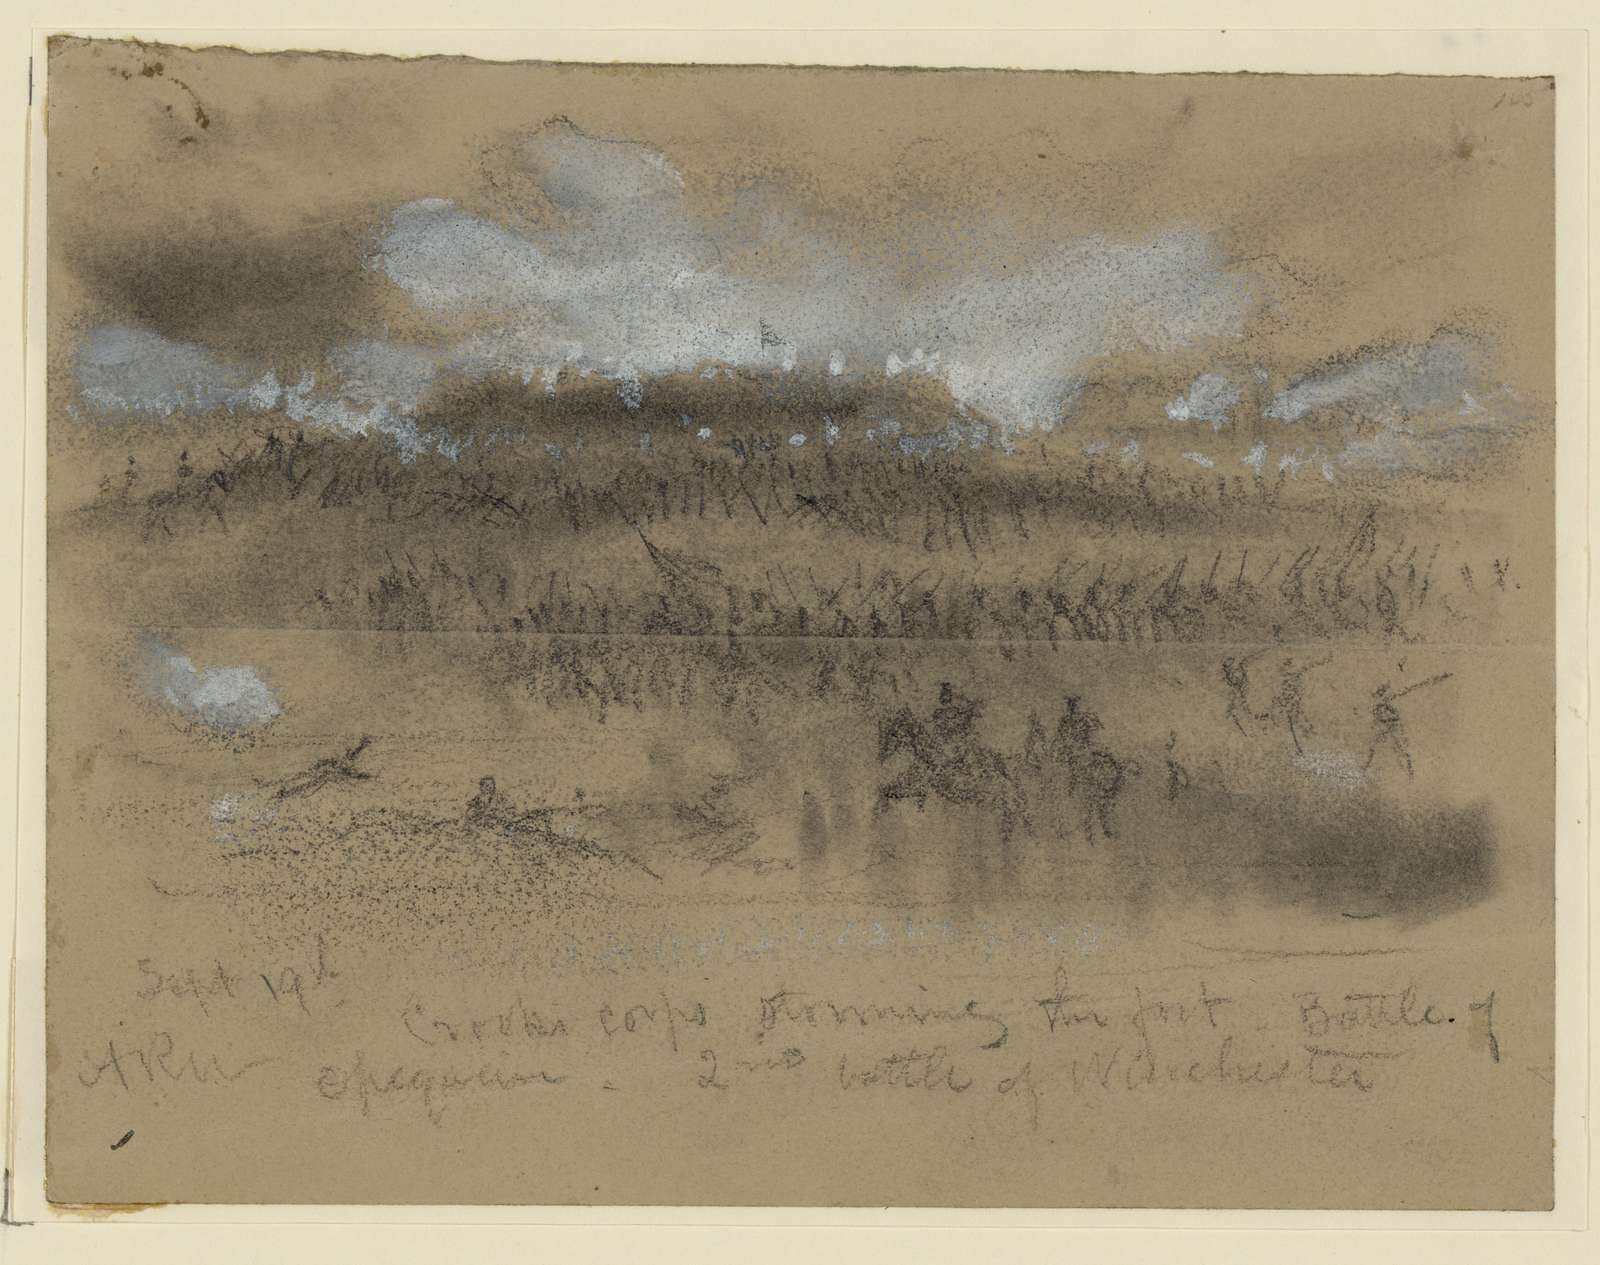 Sept. 19th. Crooks Corps storming to the fort. Battle of Opequon- 2nd battle of Winchester